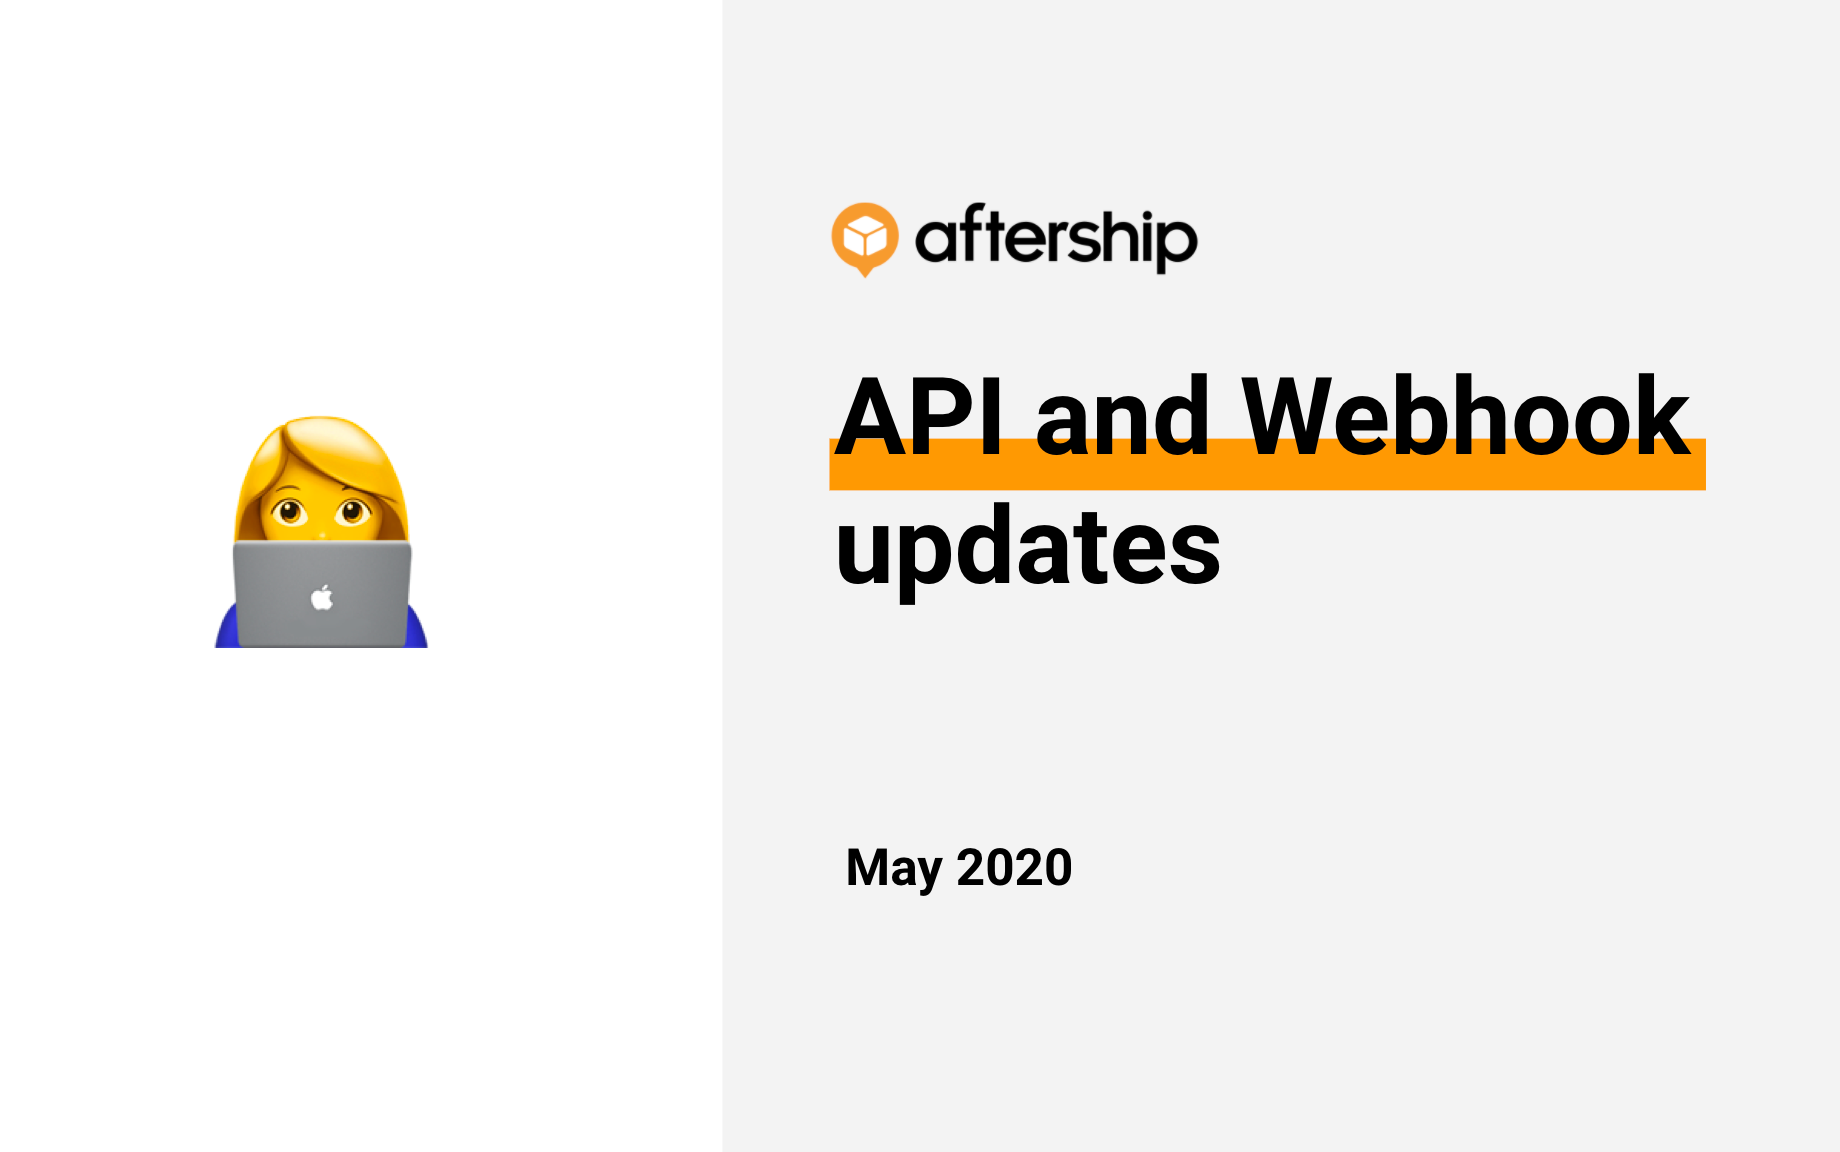 Updates to AfterShip API and Webhook (May 2020)